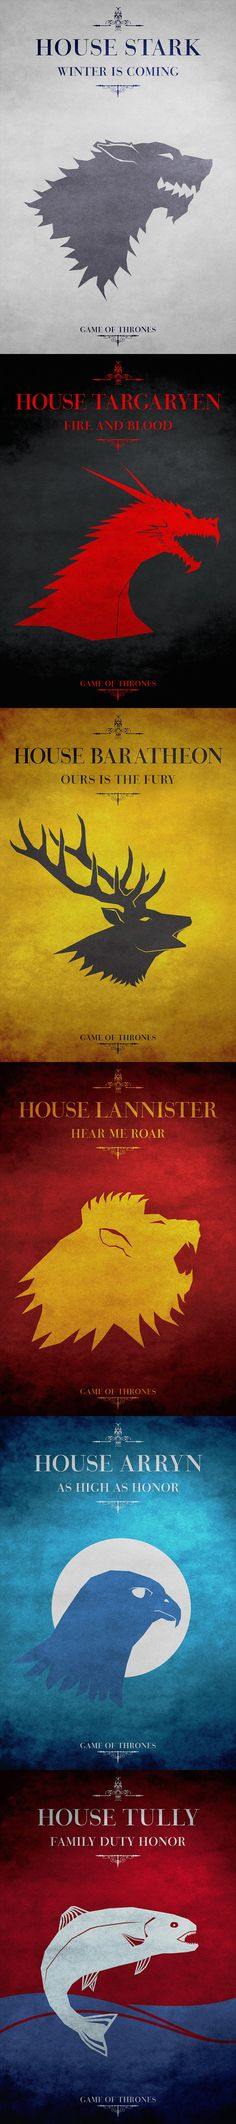 Game of Thrones Posters | Things for Geeks.... i love this!!!